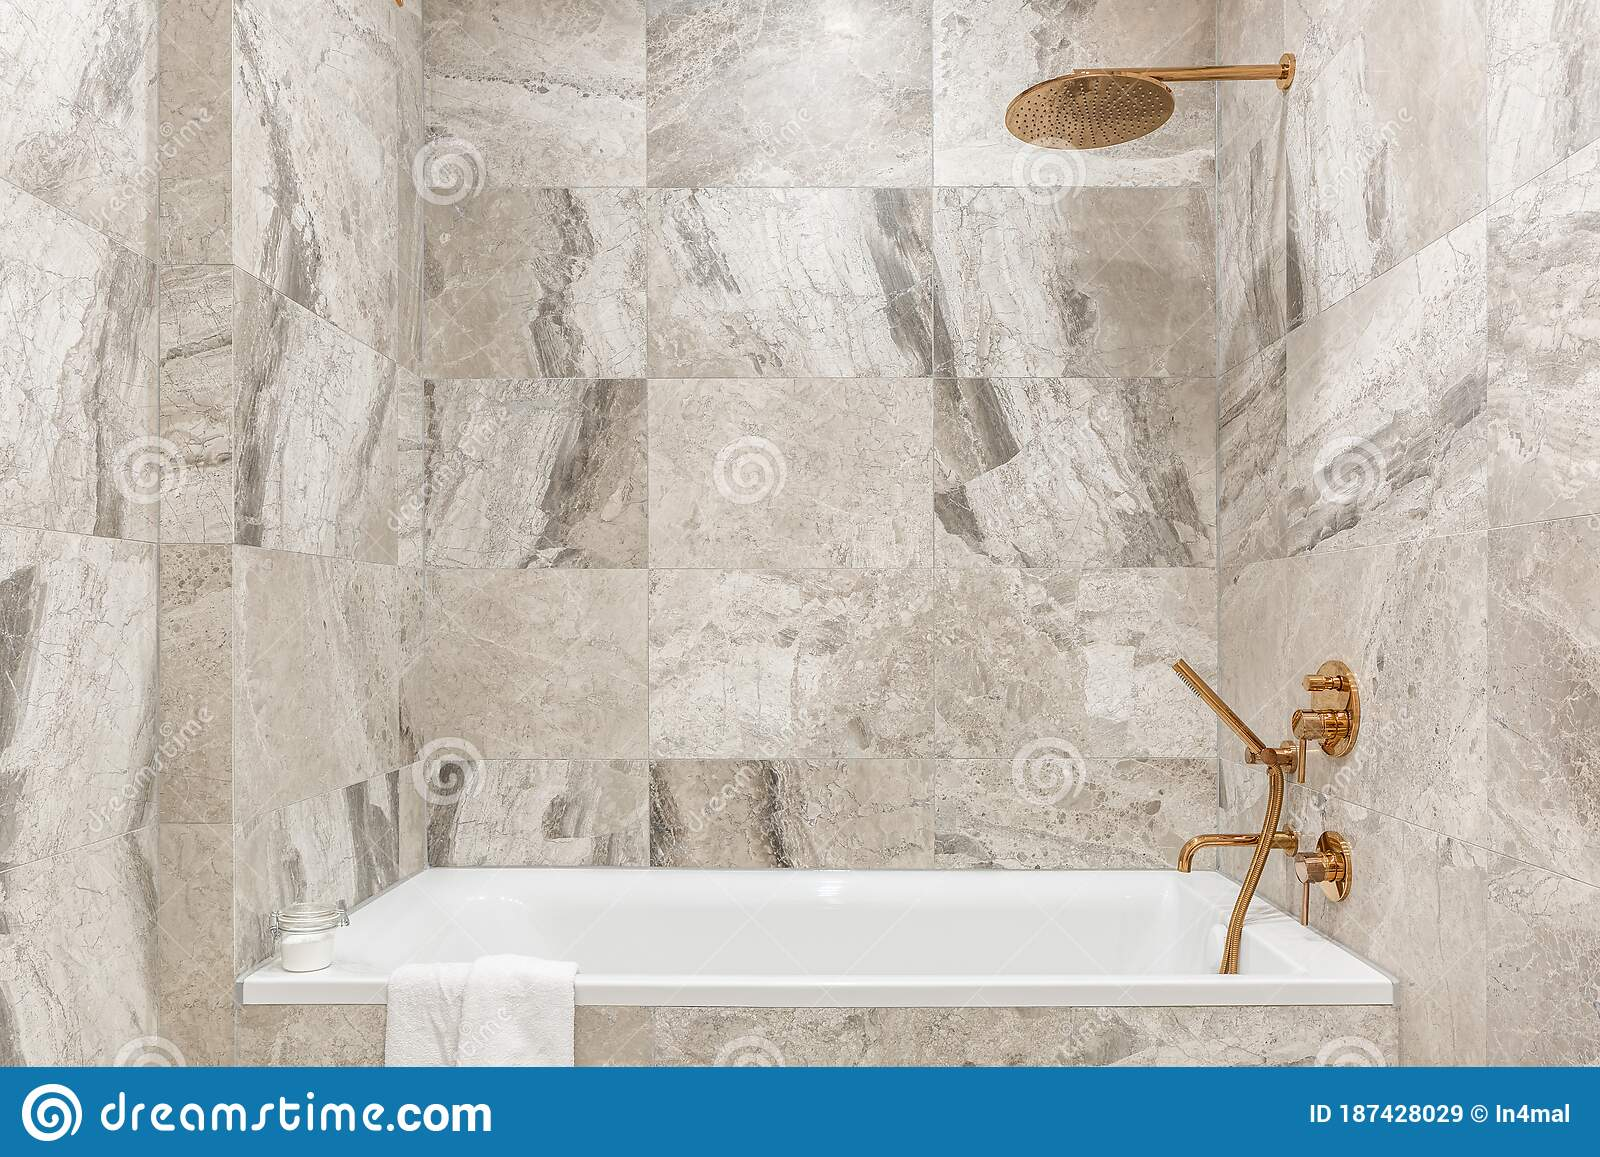 Bathtub In Bathroom With Marble Tiles Stock Image Image Of Interior Residential 187428029